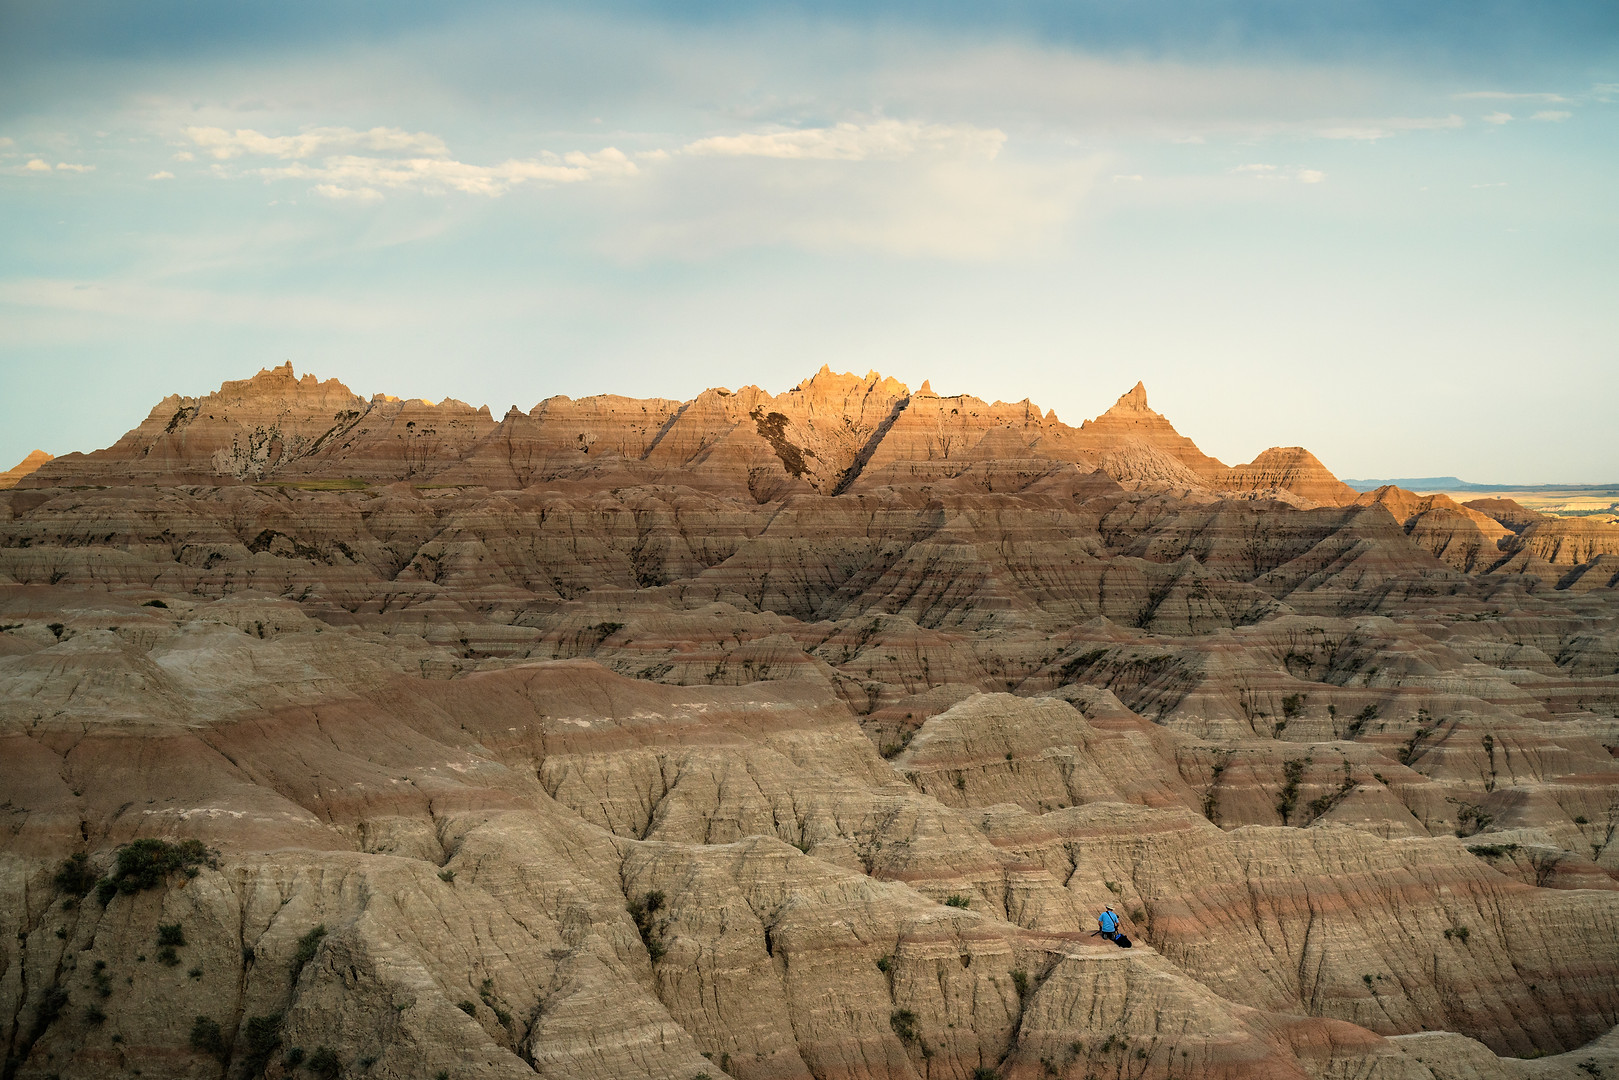 JRoybal_Workshops_Badlands-36933.jpg